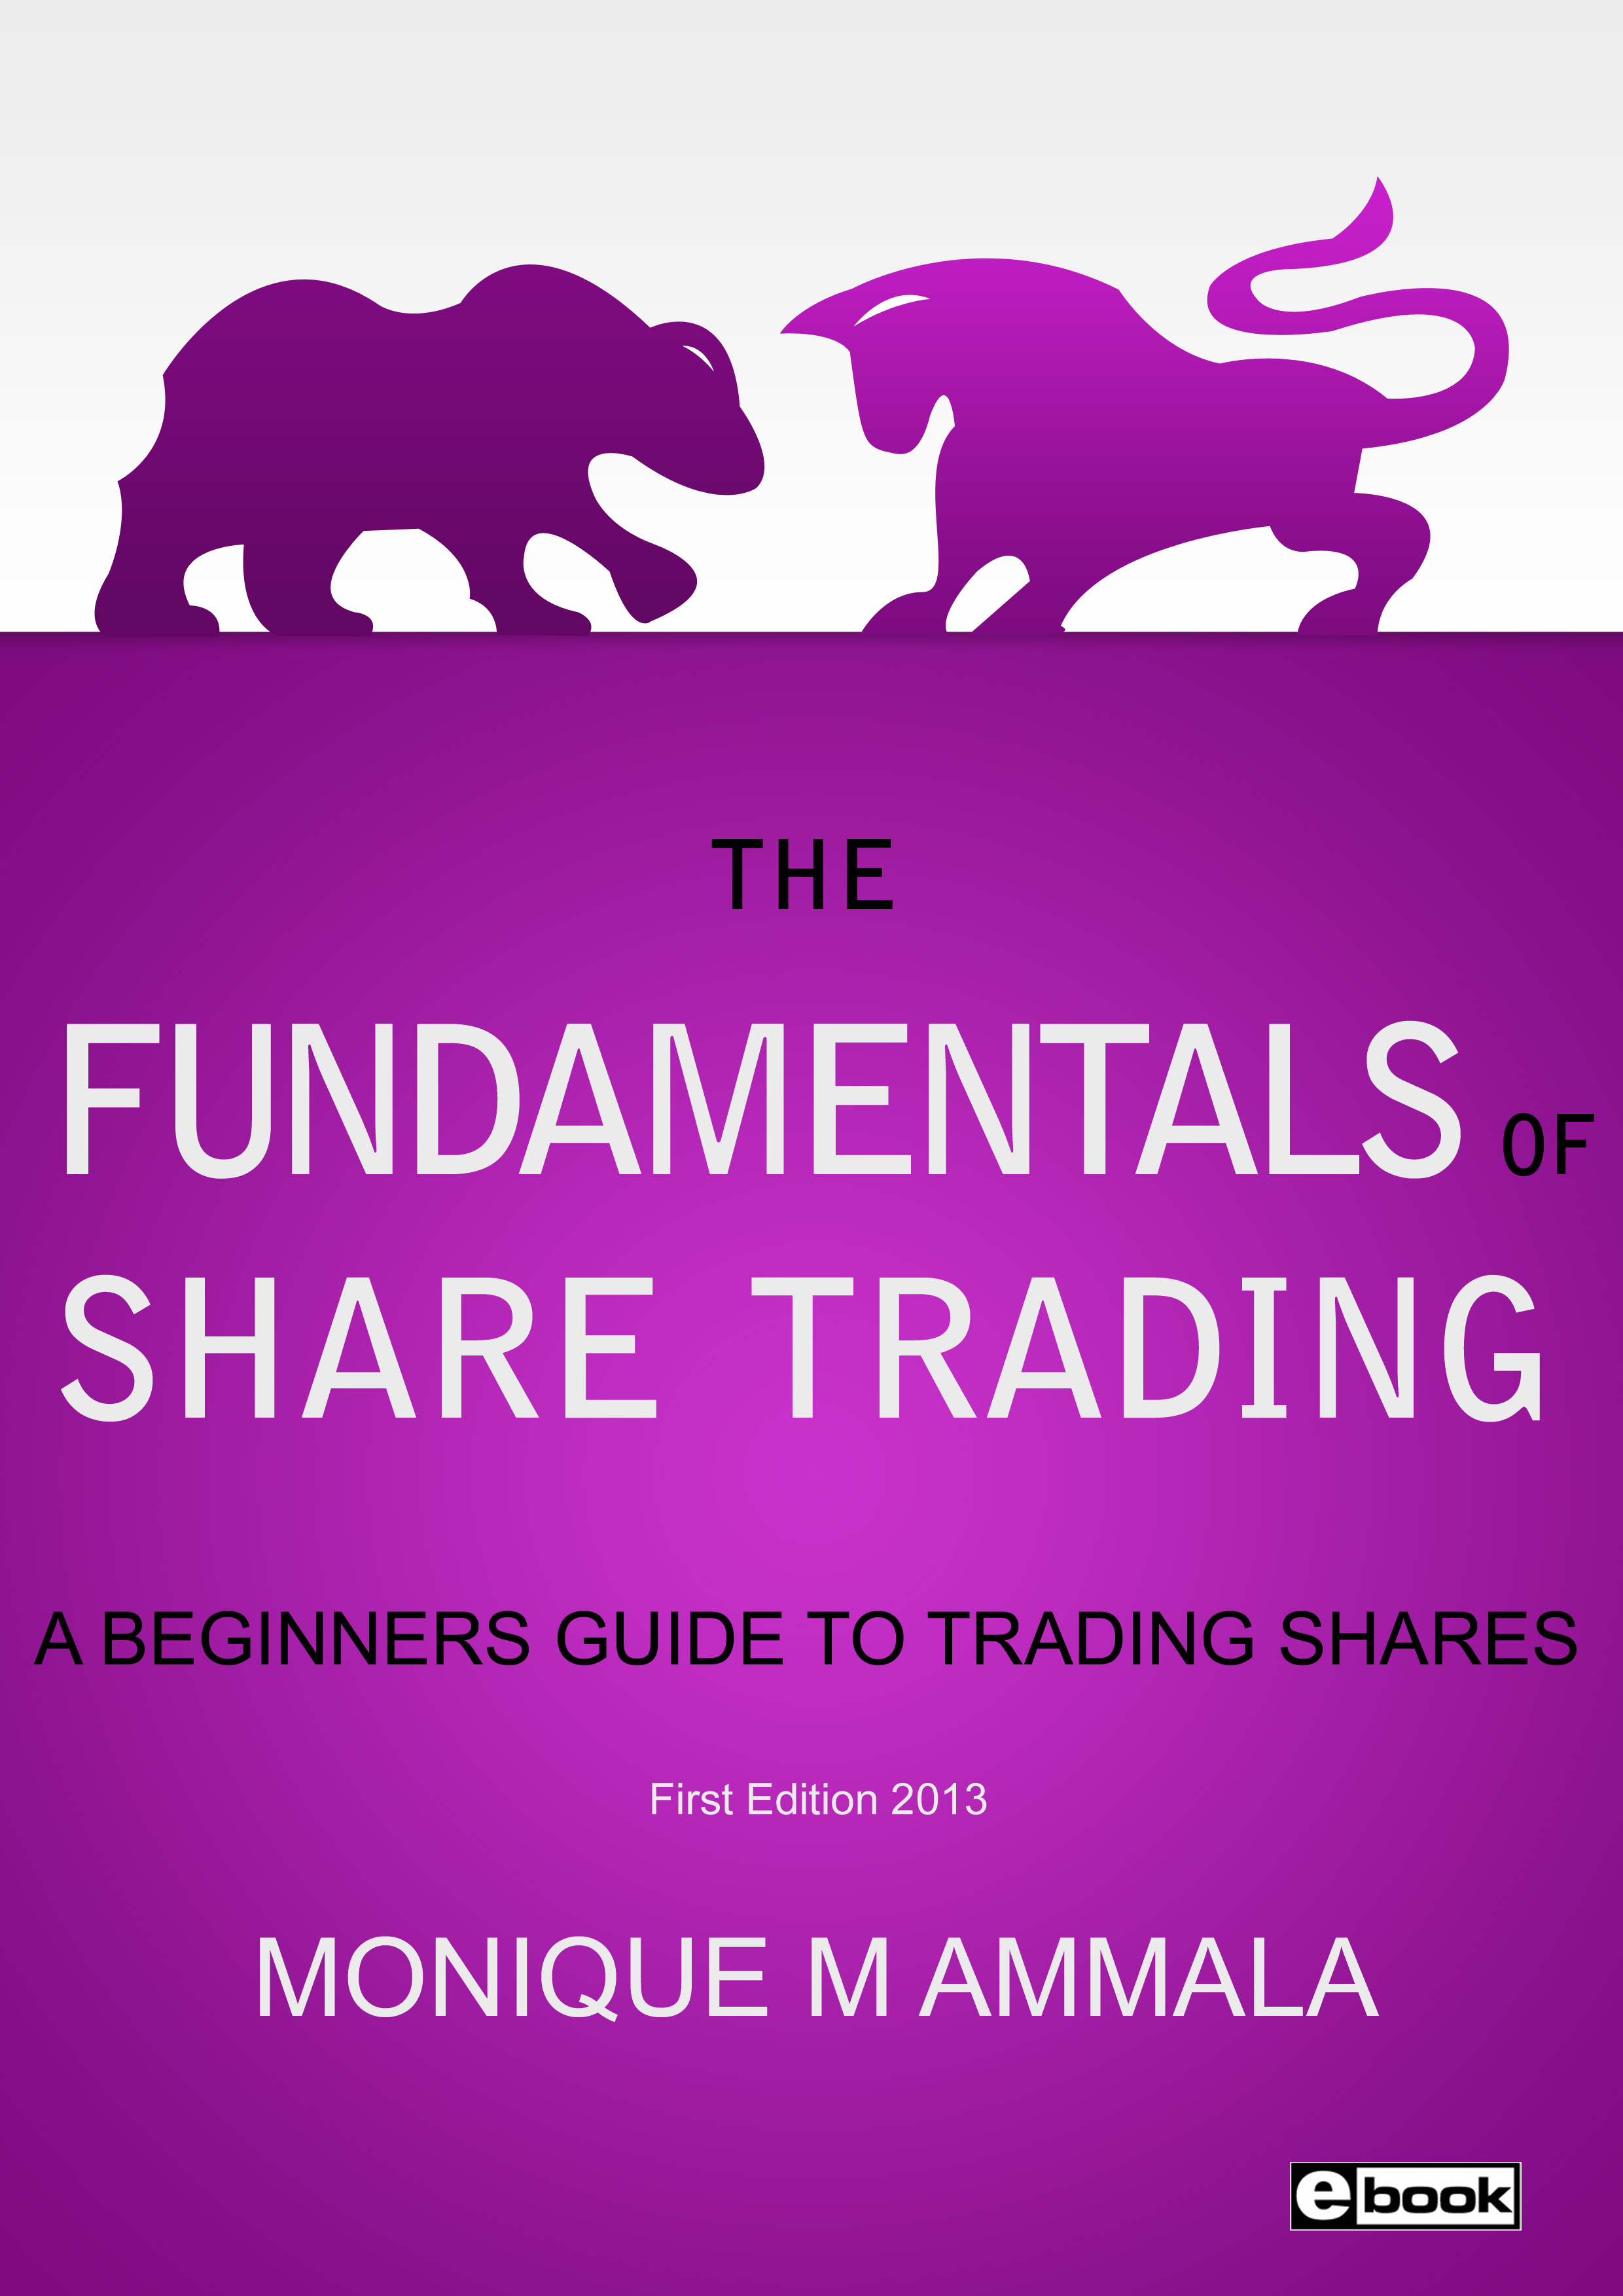 The Fundamentals of Share Trading